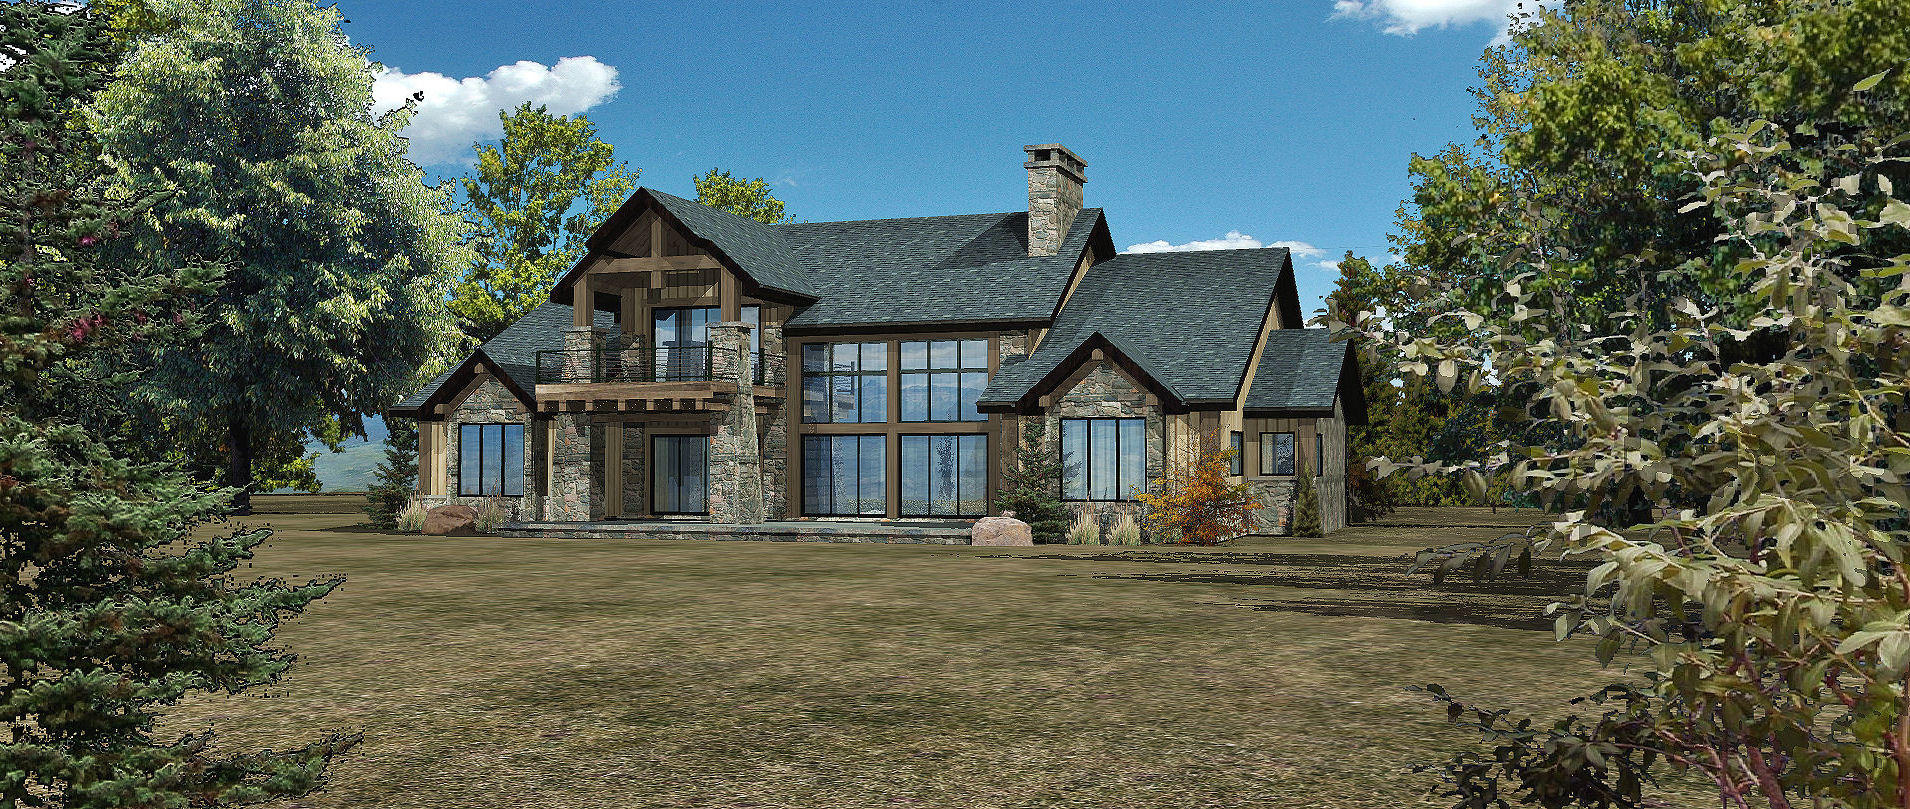 Harbor Cove - Rear Rendering by Wisconsin Log Homes